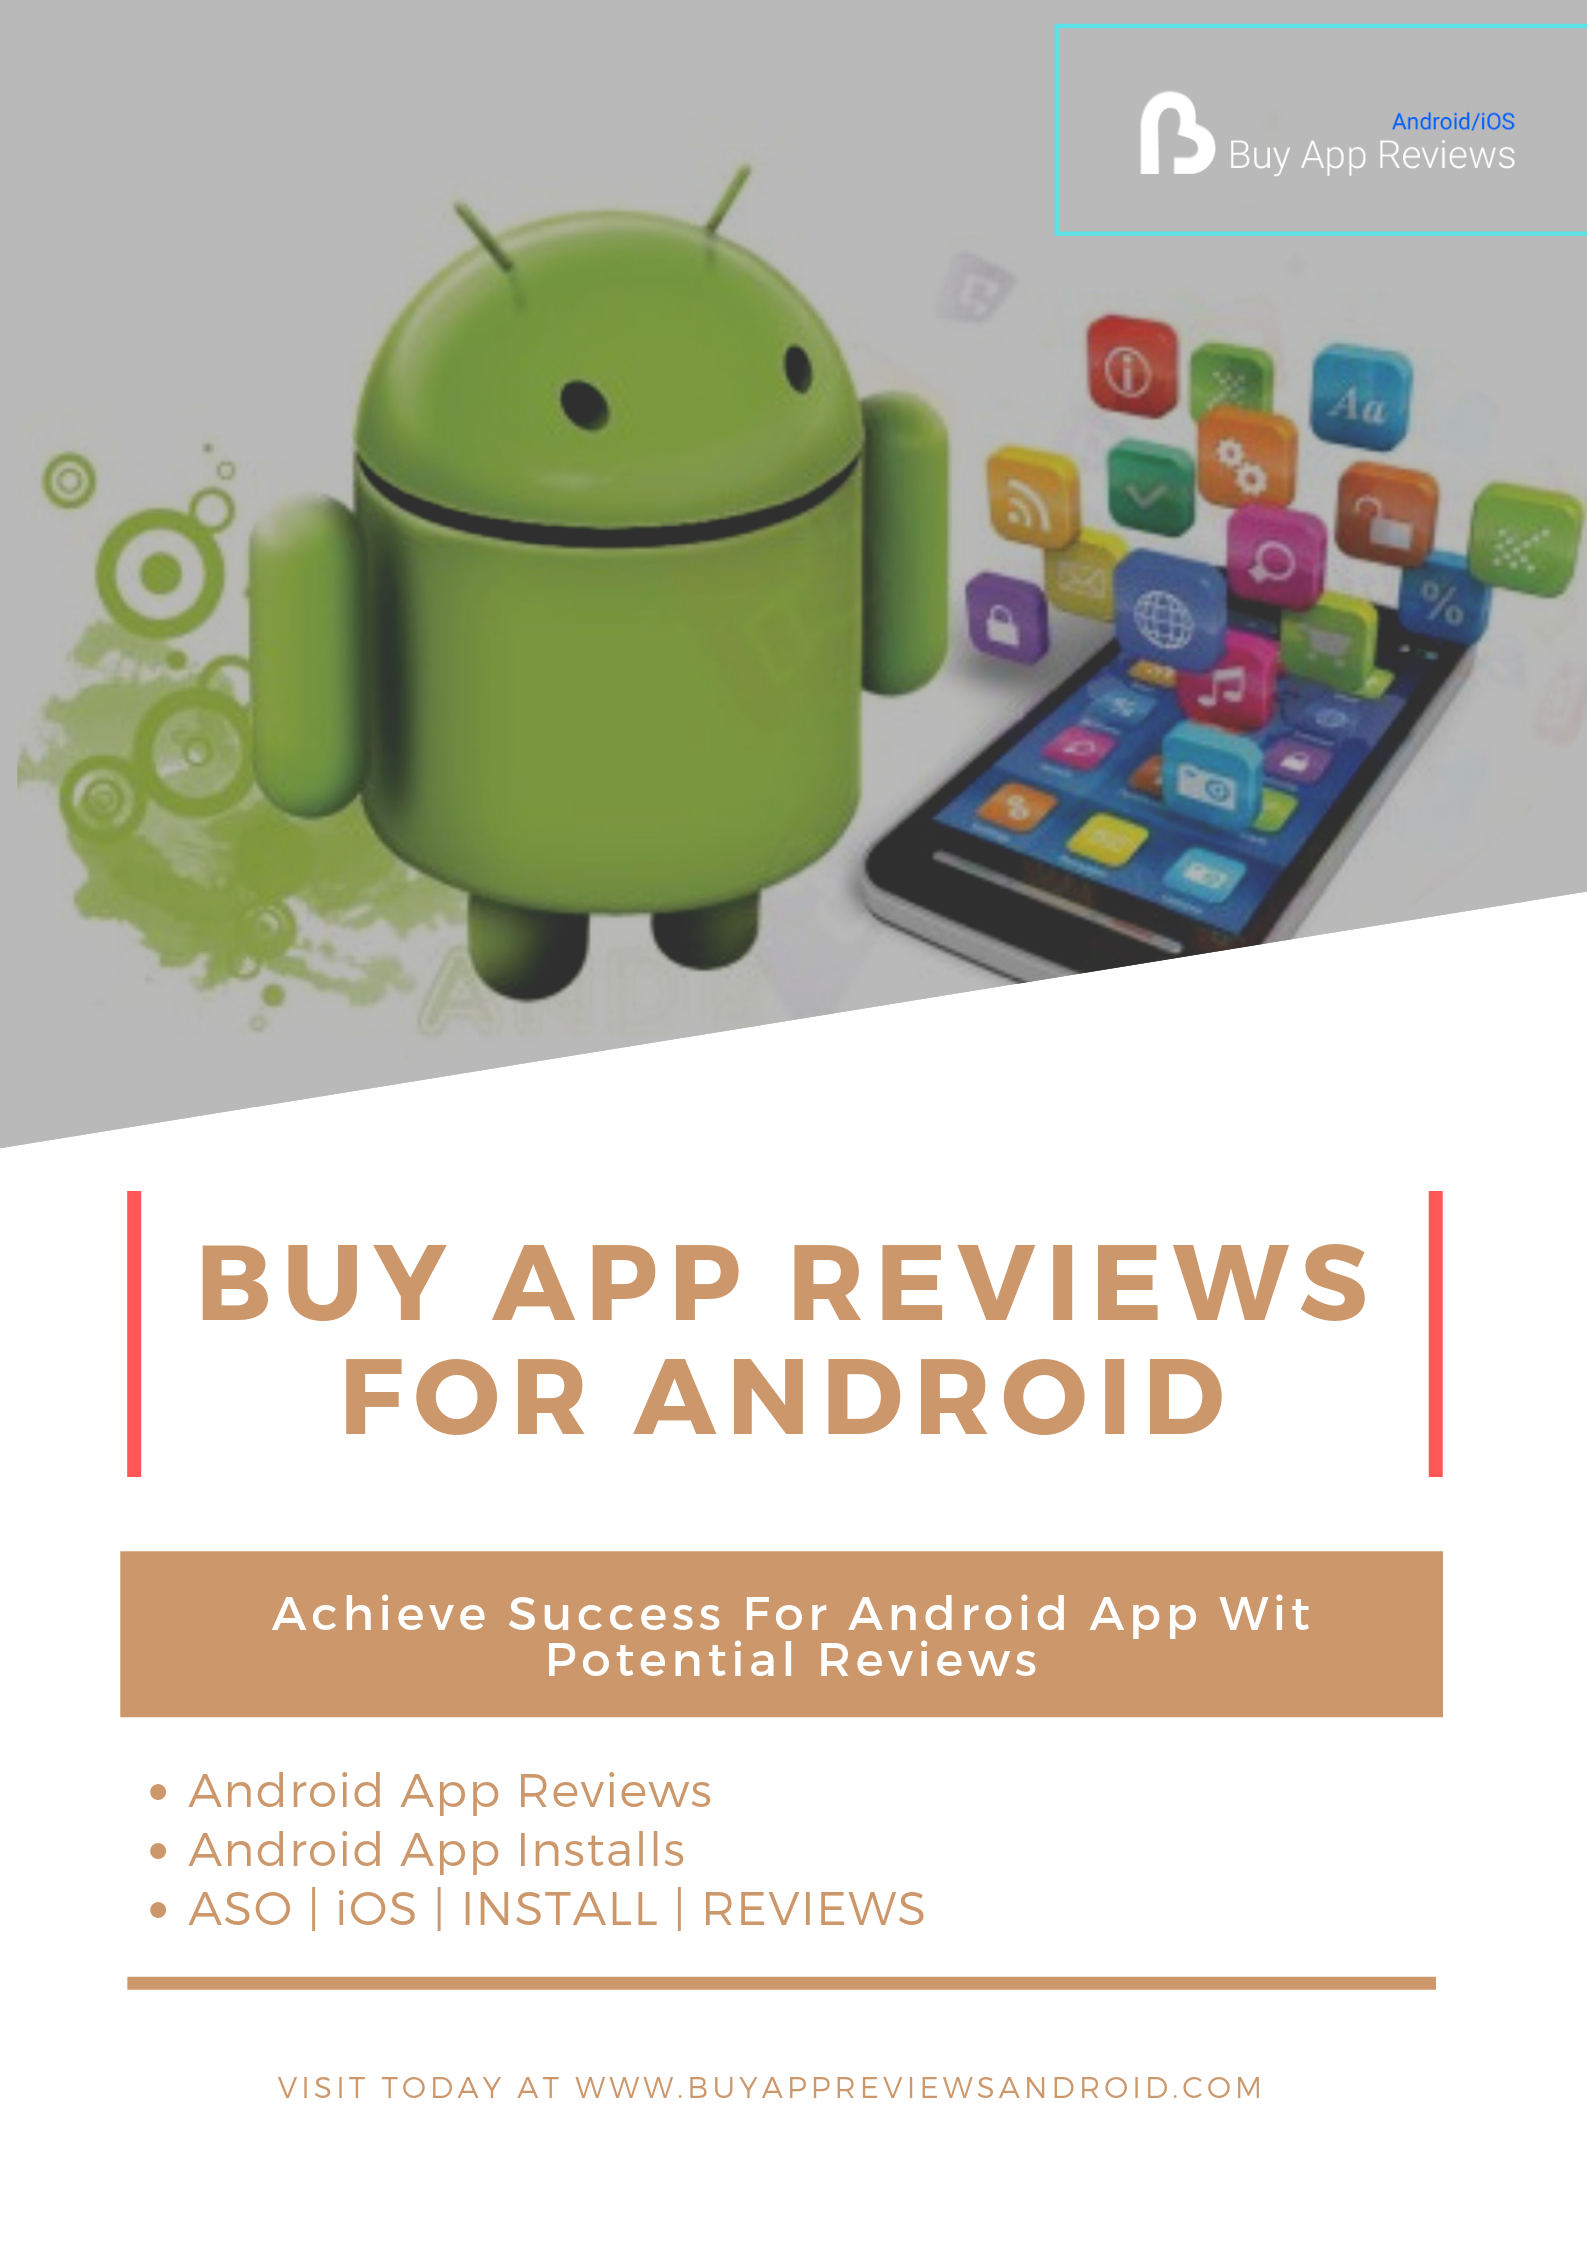 Once you Buy App Reviews Android, you will get what